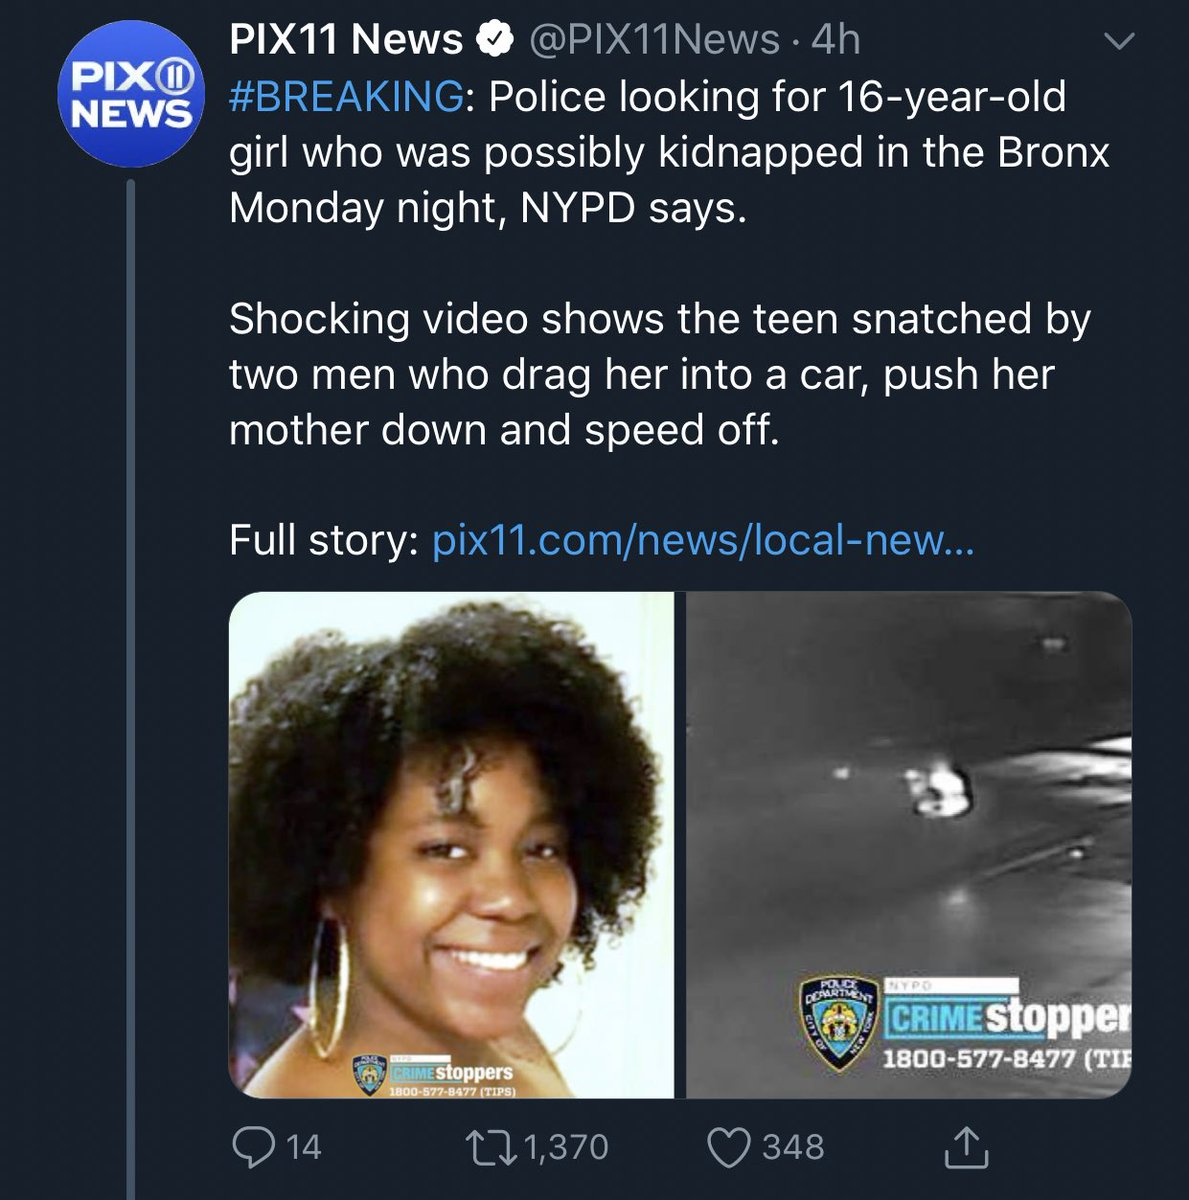 Paulette On Twitter This Is About Karol Sanchez S Kidnapping In The Bronx Why Isn T There More Info If It Was A White Girl They D Have Full Name Age Description Etc This Amber